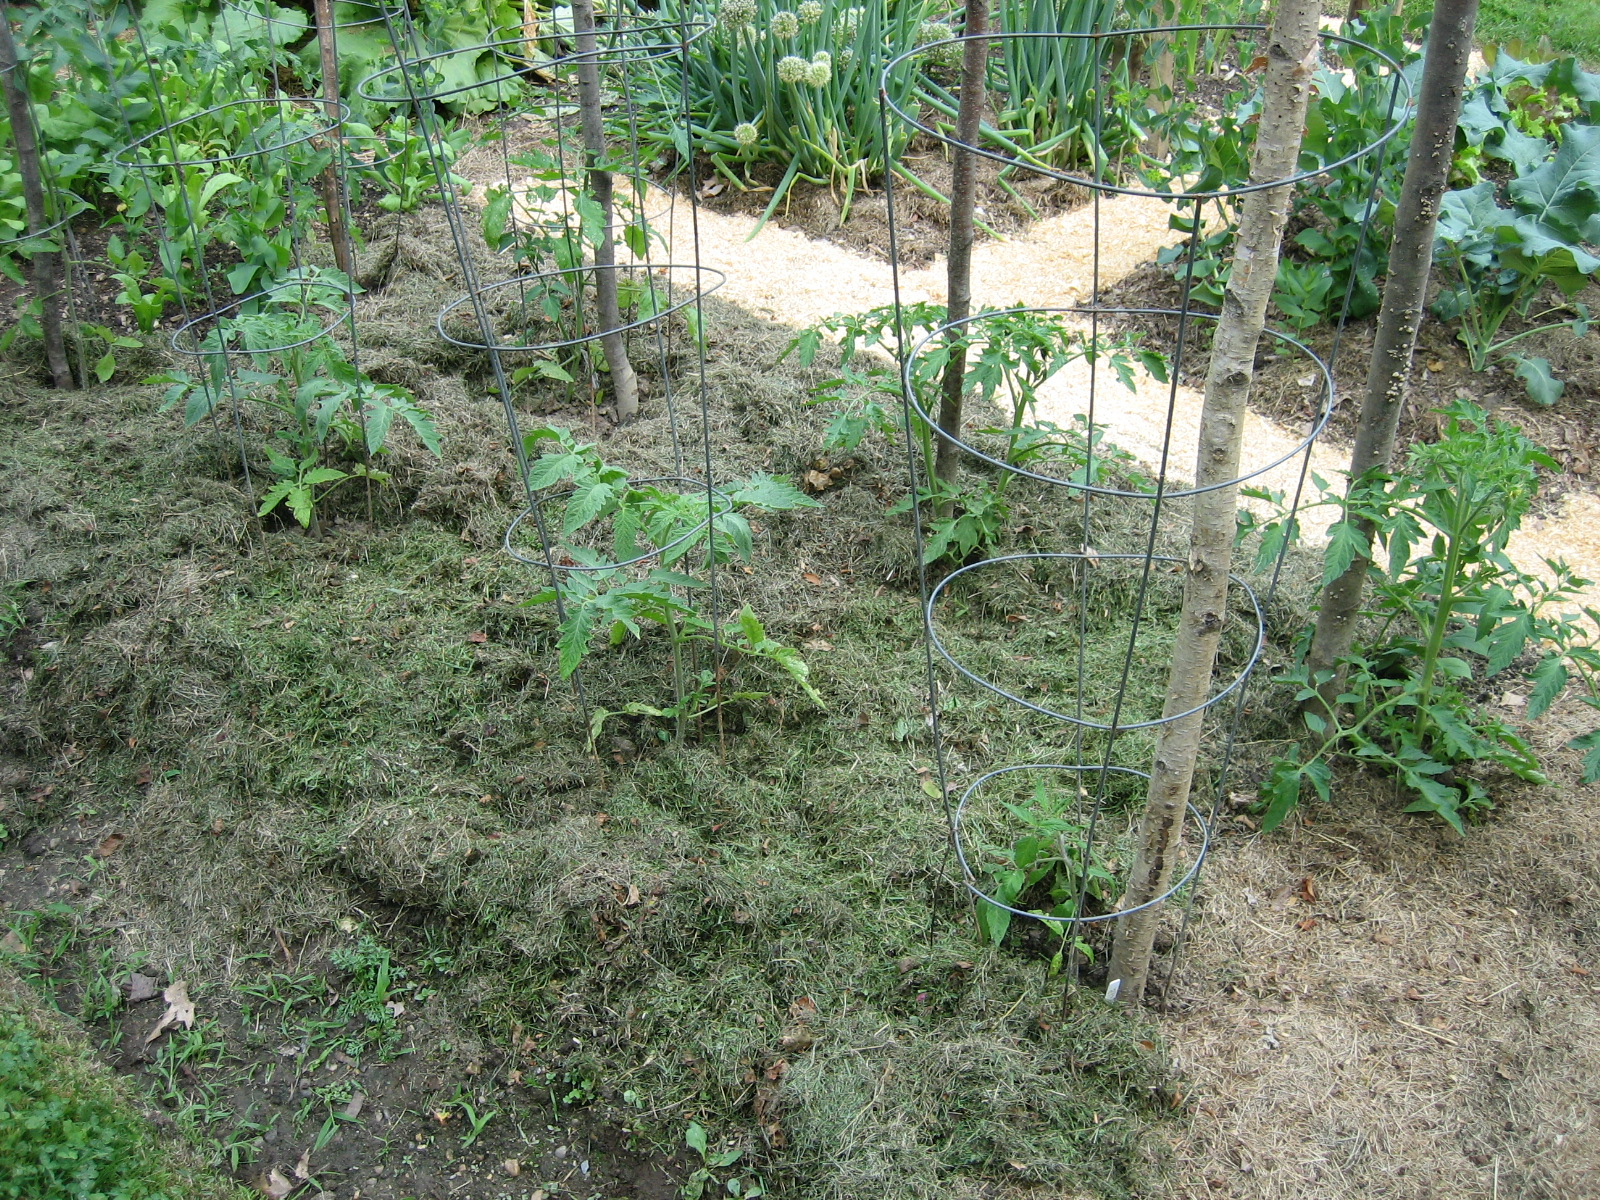 Tomatoes mulched with grass